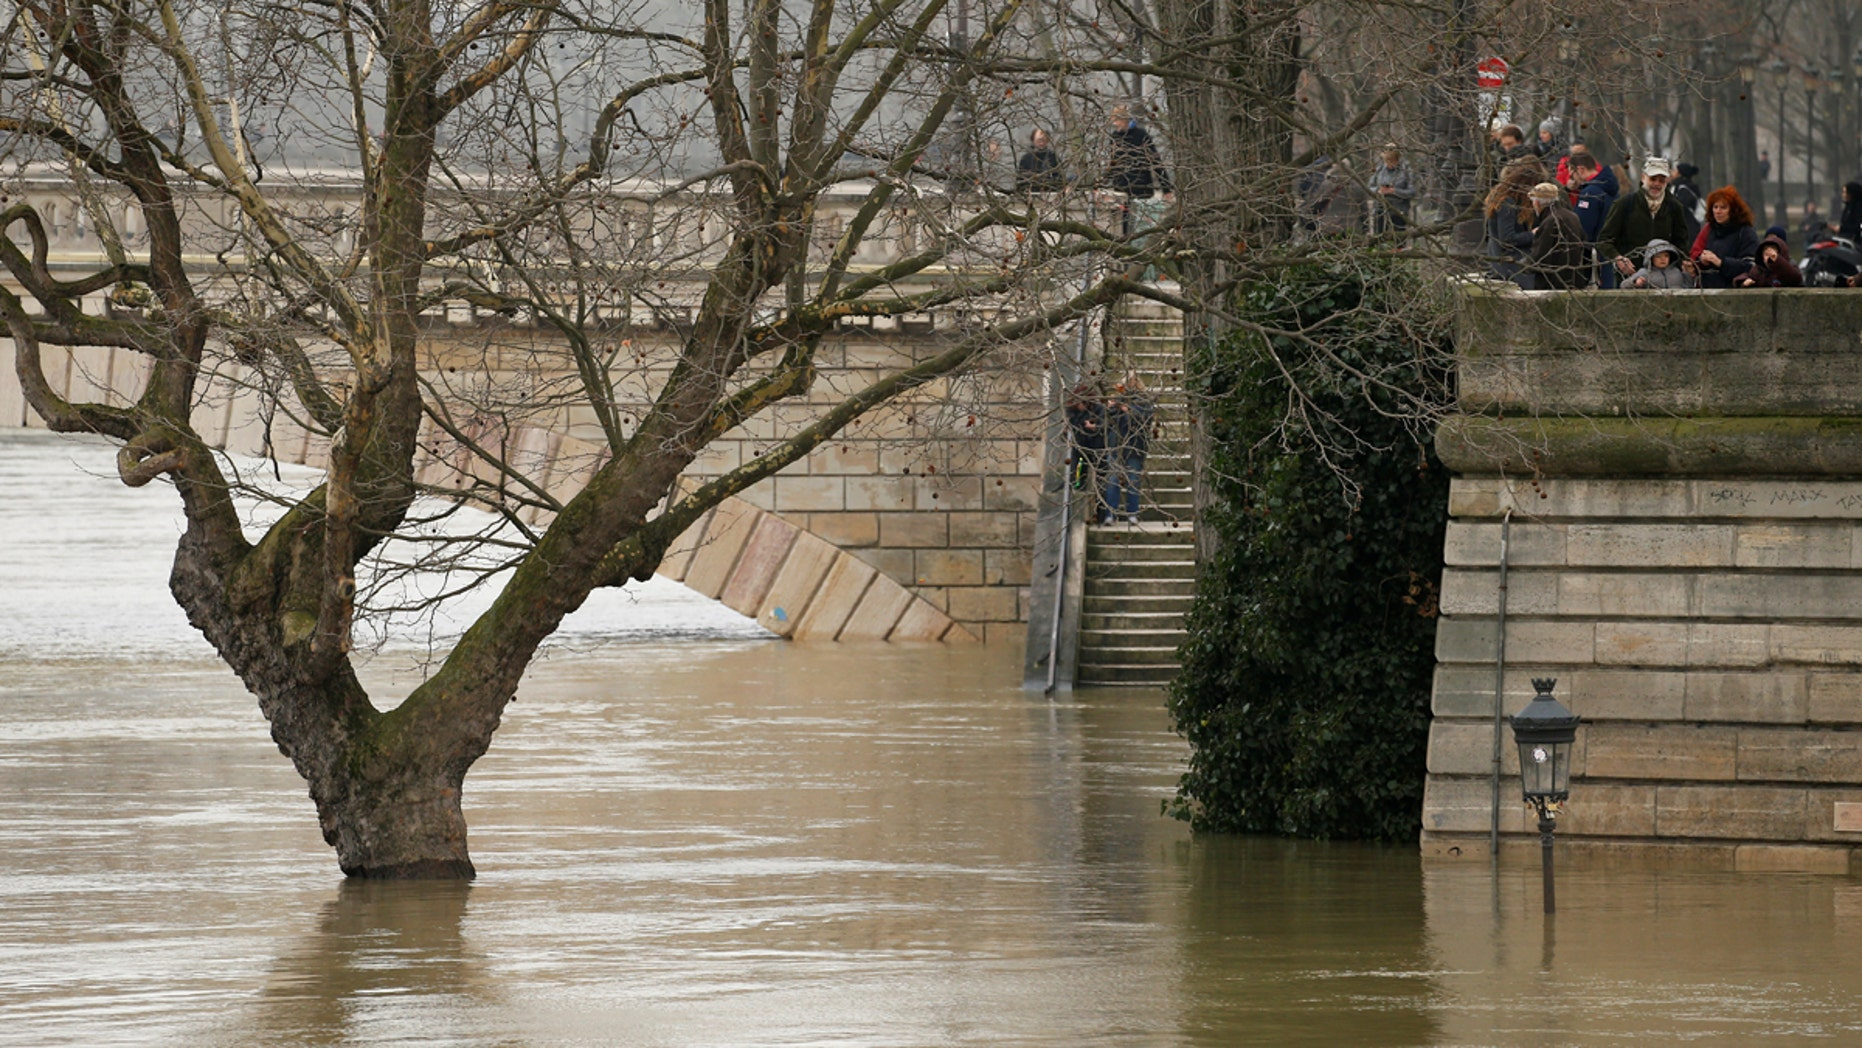 A street lamp and a tree are seen on the flooded banks of the River Seine in Paris, France, after days of almost non-stop rain, Jan. 27, 2018.